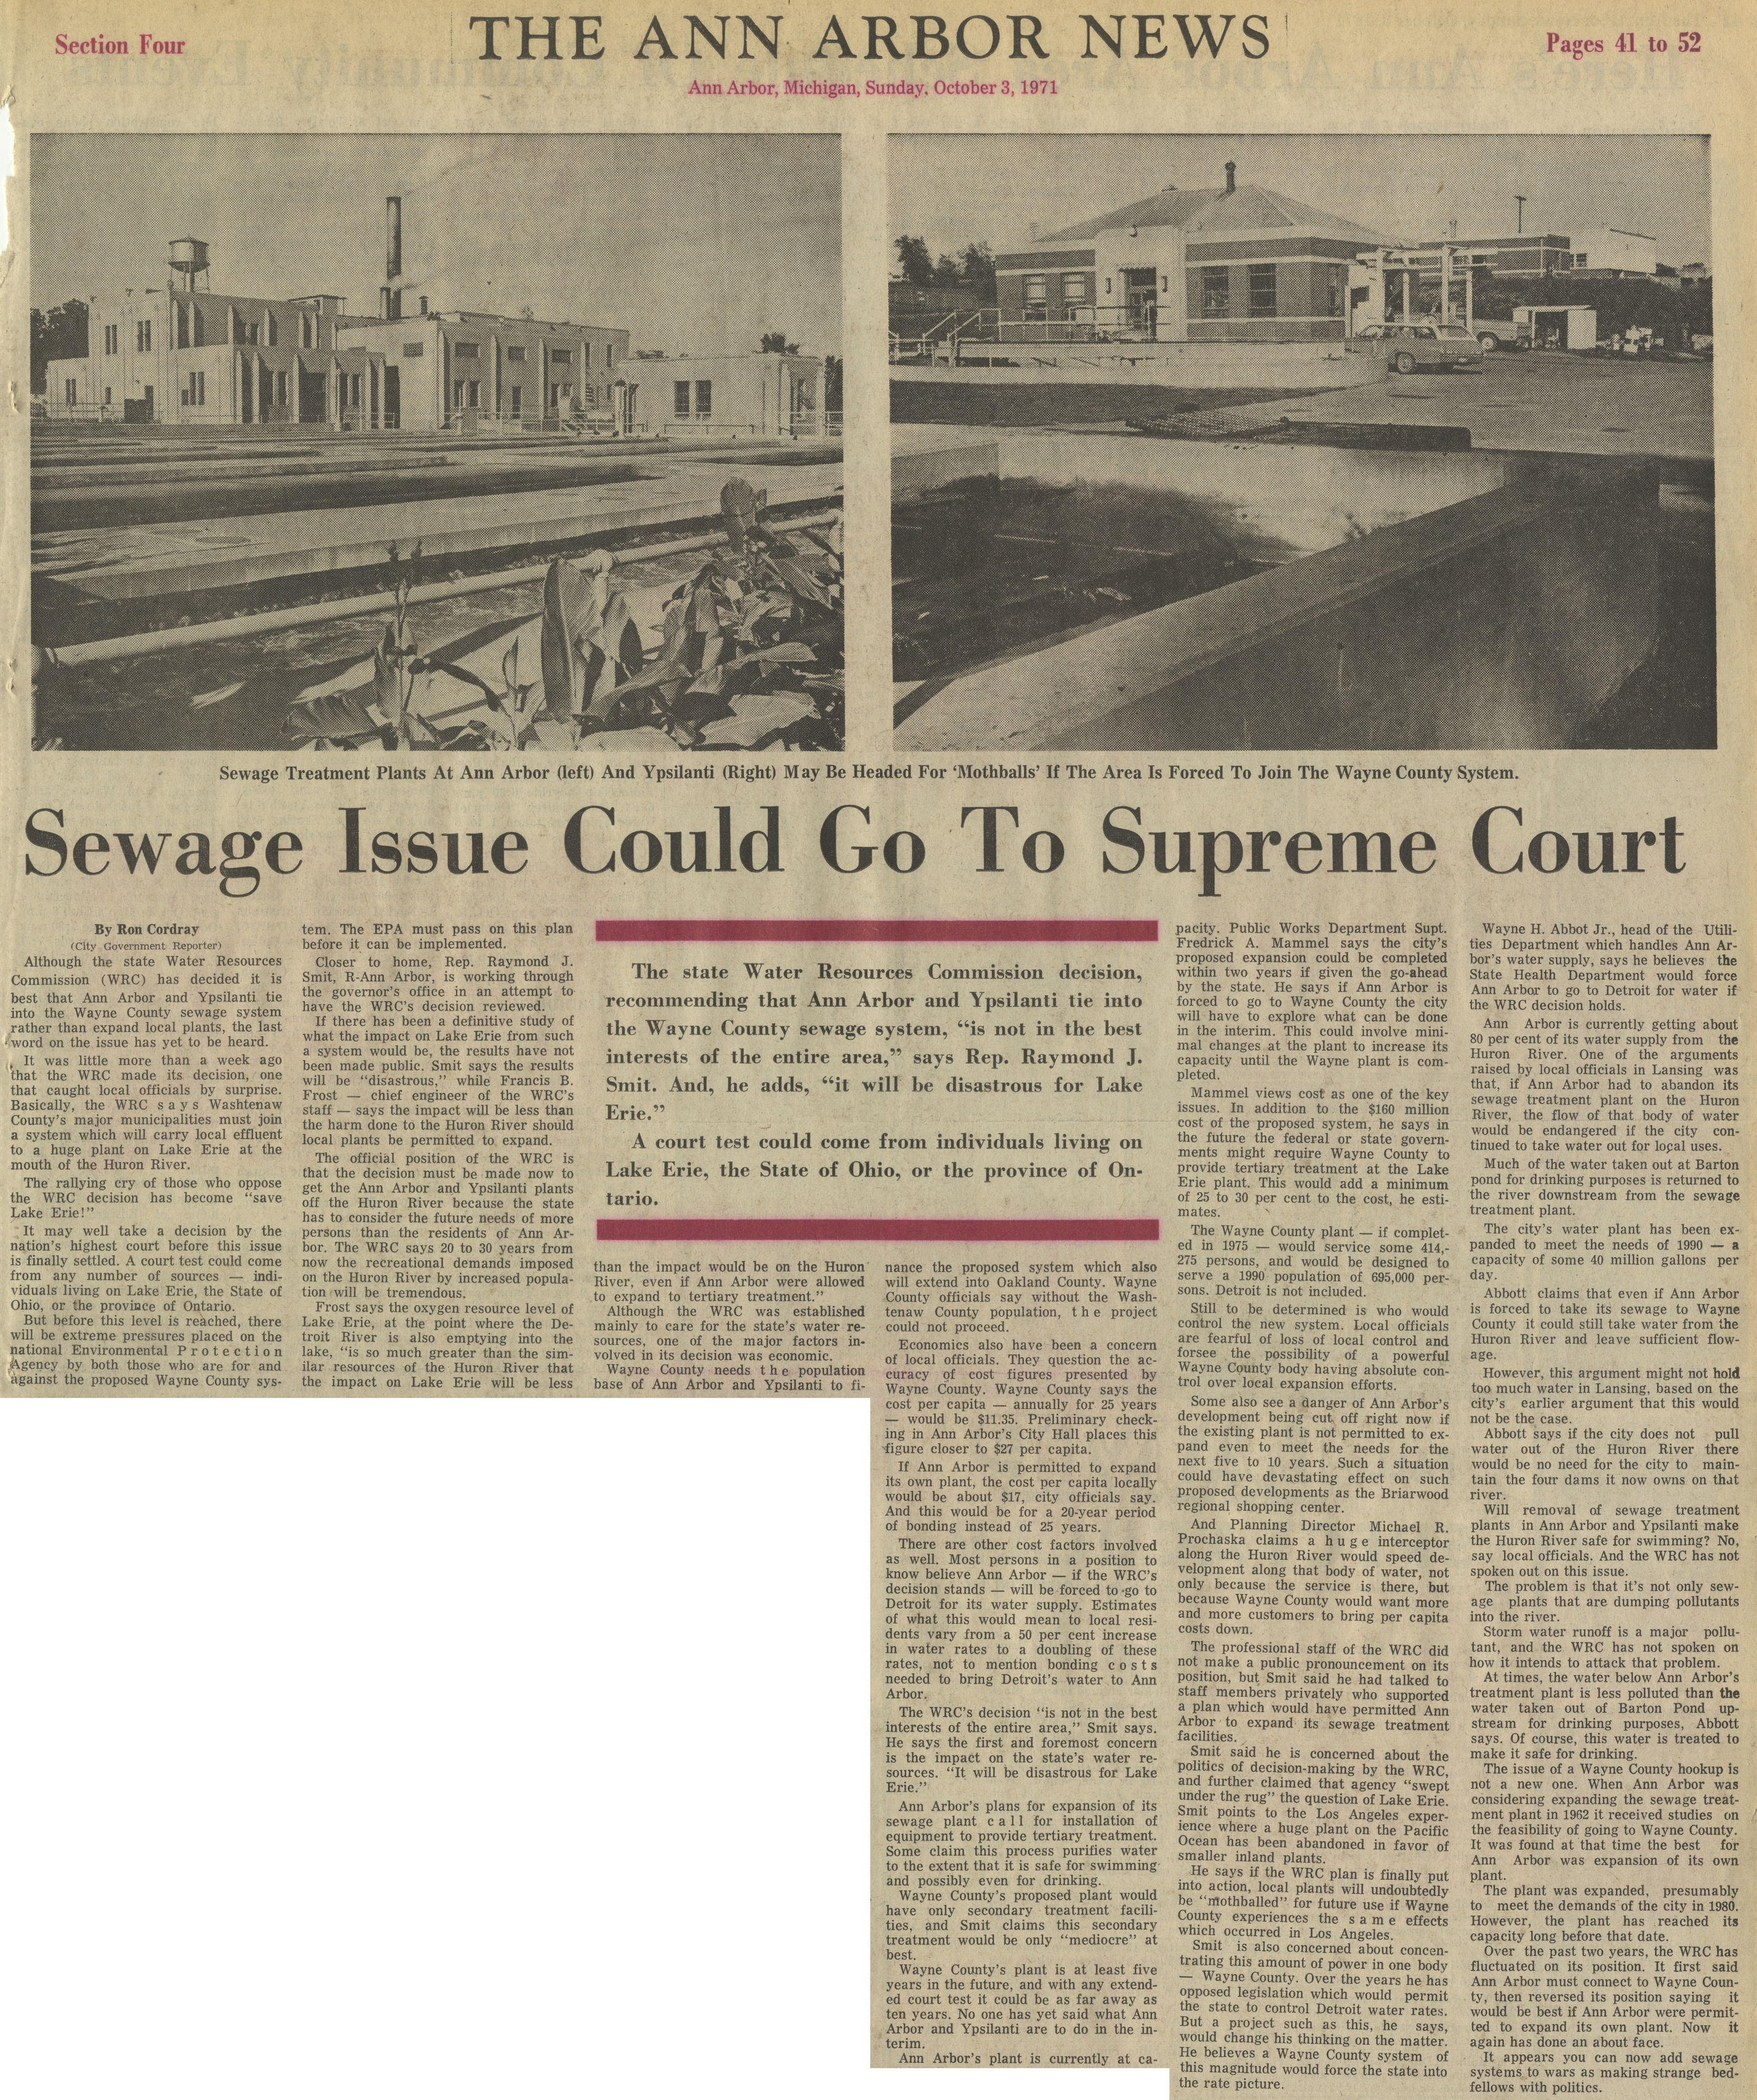 Sewage Issue Could Go To Supreme Court image